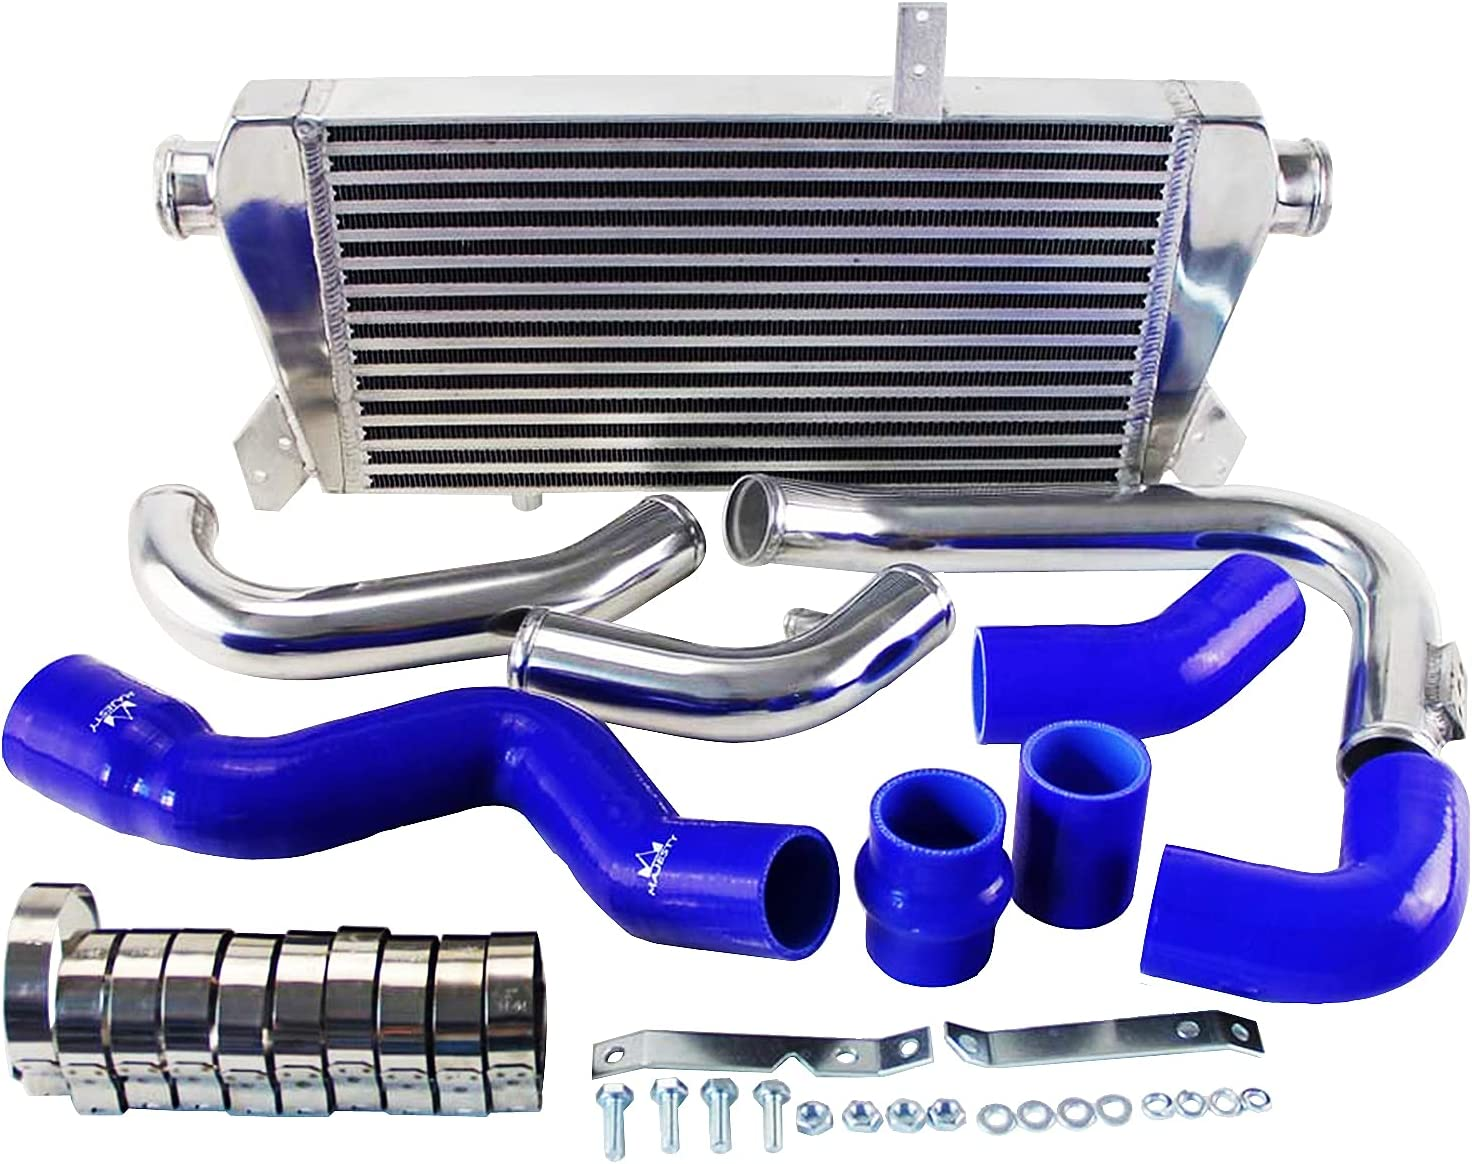 OFFicial Upgrade Front Mount Max 87% OFF Intercooler Kit for 1.8T B6 Audi Qu A4 Turbo